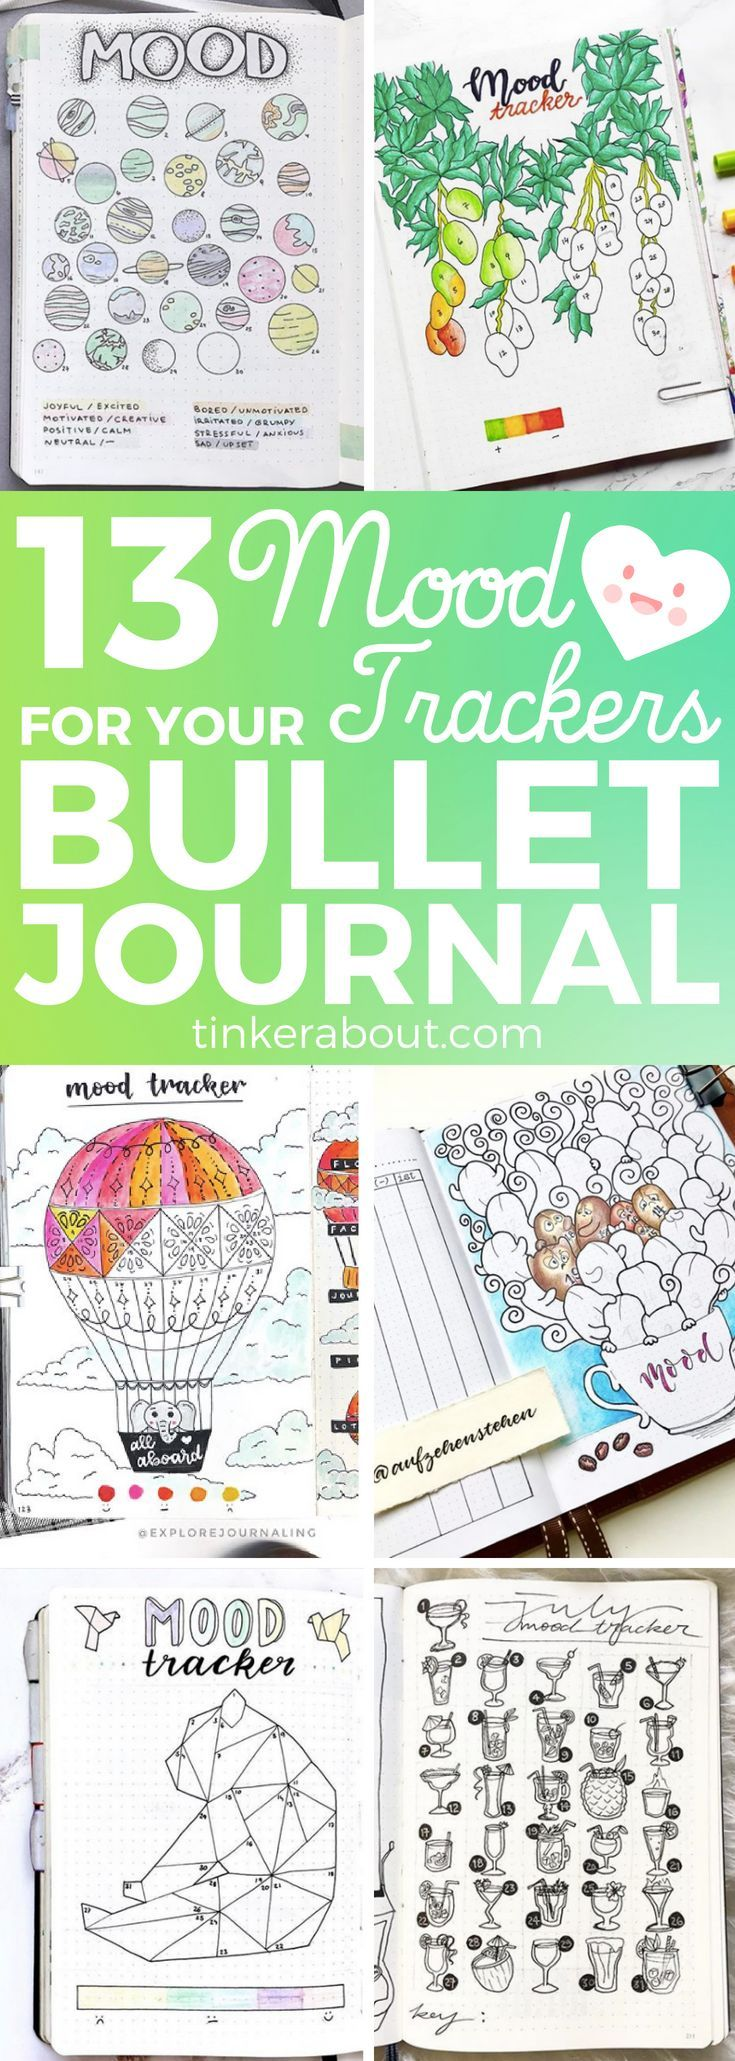 13 More Mood Tracker Ideas For Your Bullet Journal To Help Better Your Mental Health